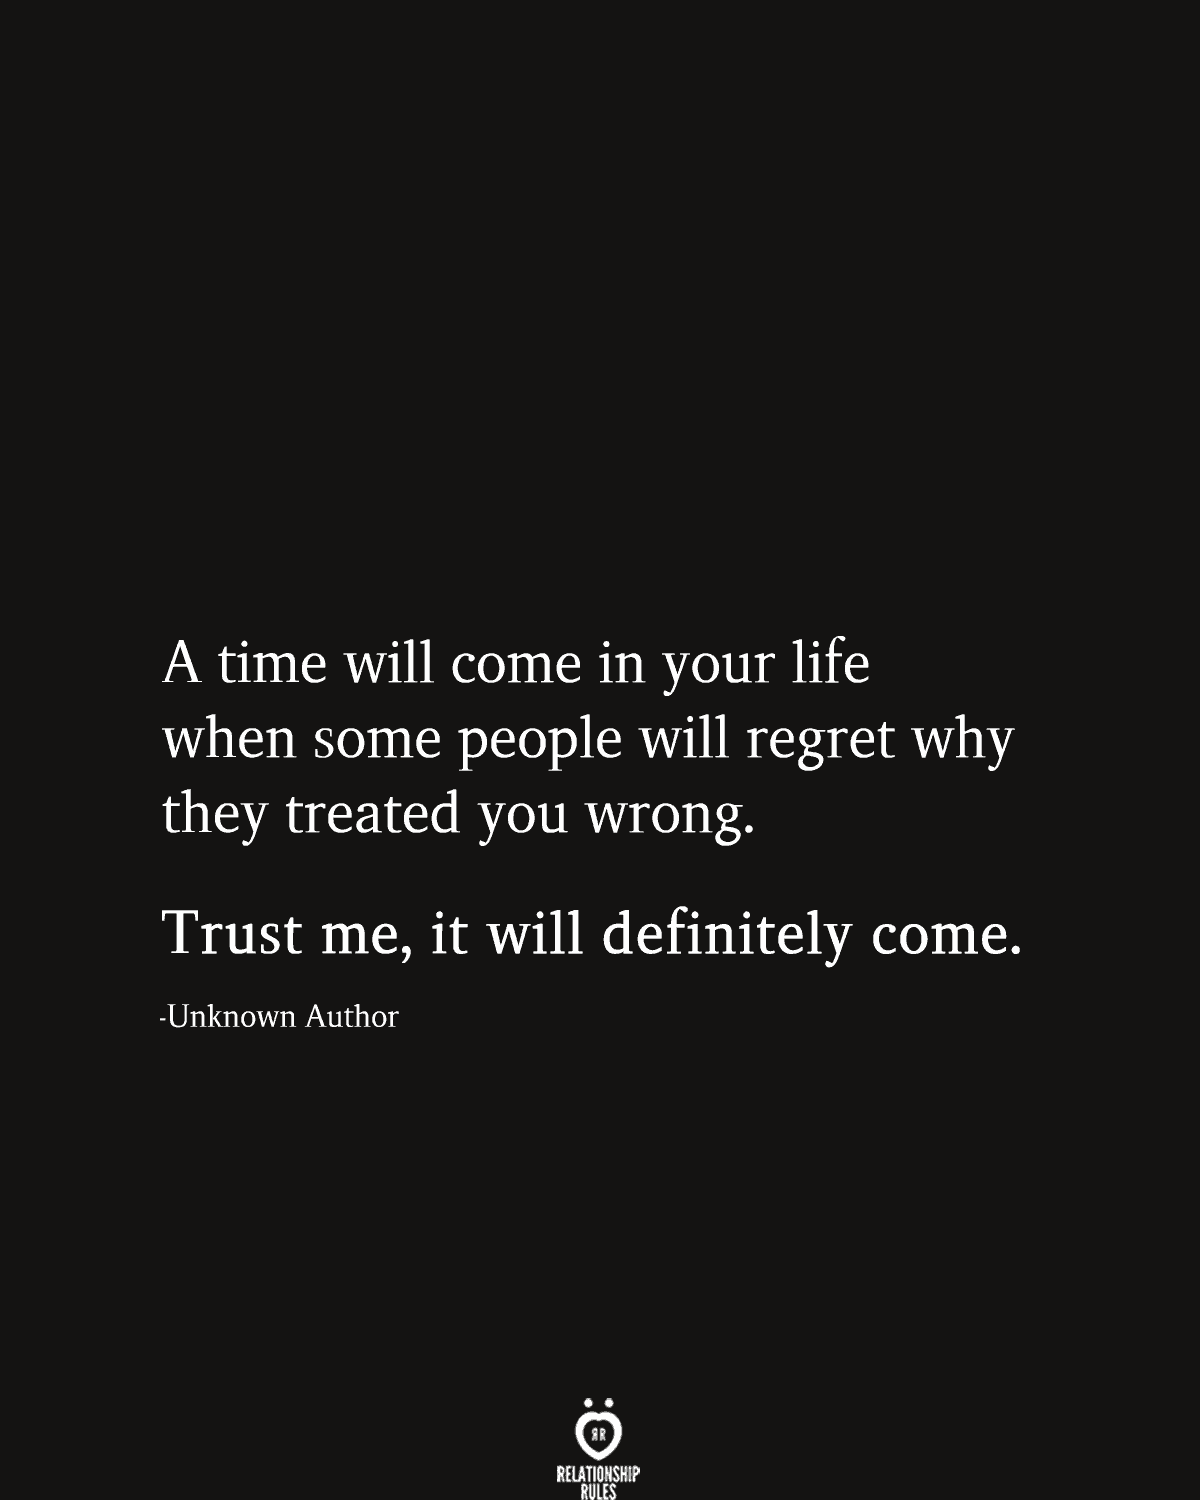 A Time Will Come In Your Life When Some People Will Regret Why They Treated You Wrong